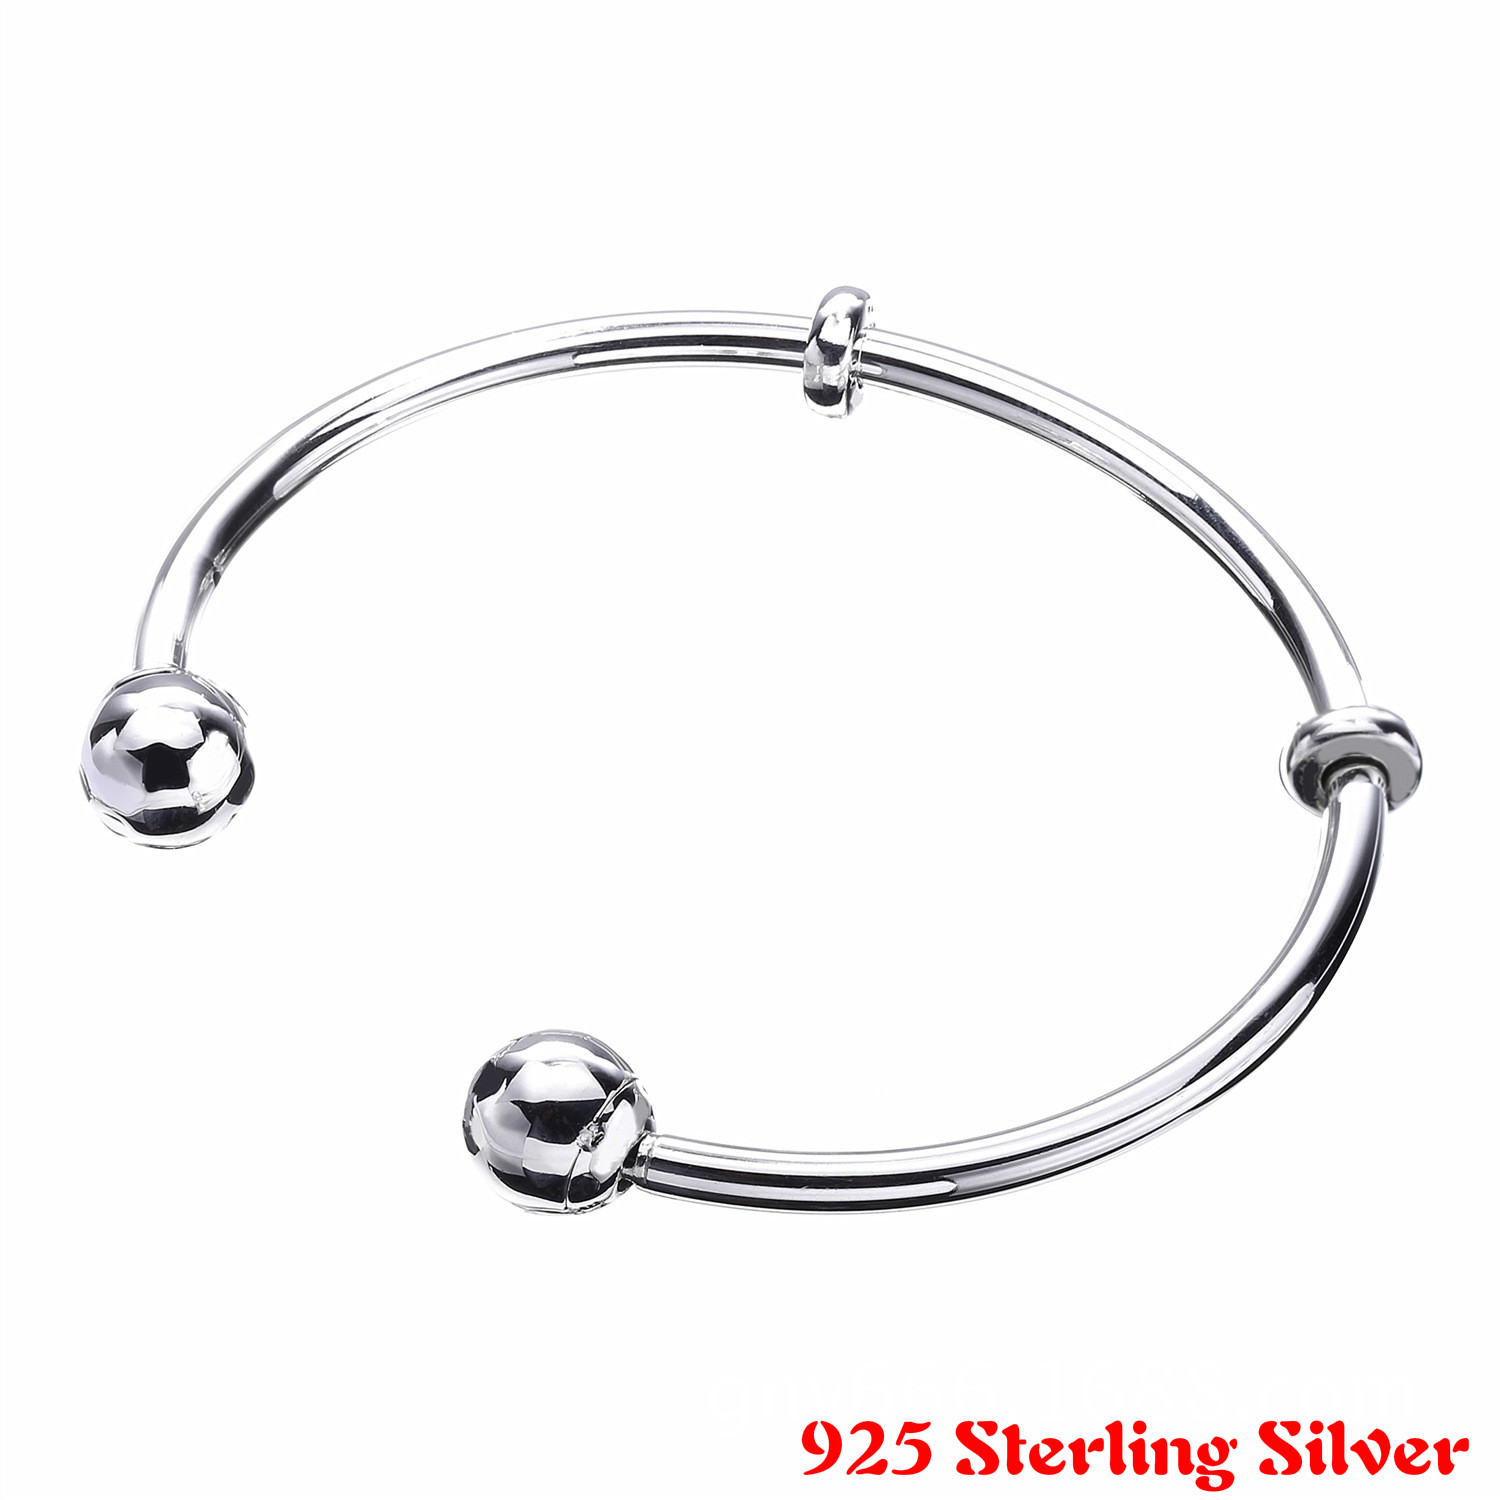 bangle silver diamond open bracelet studded nicolehd products bangles sterling jewelry collections